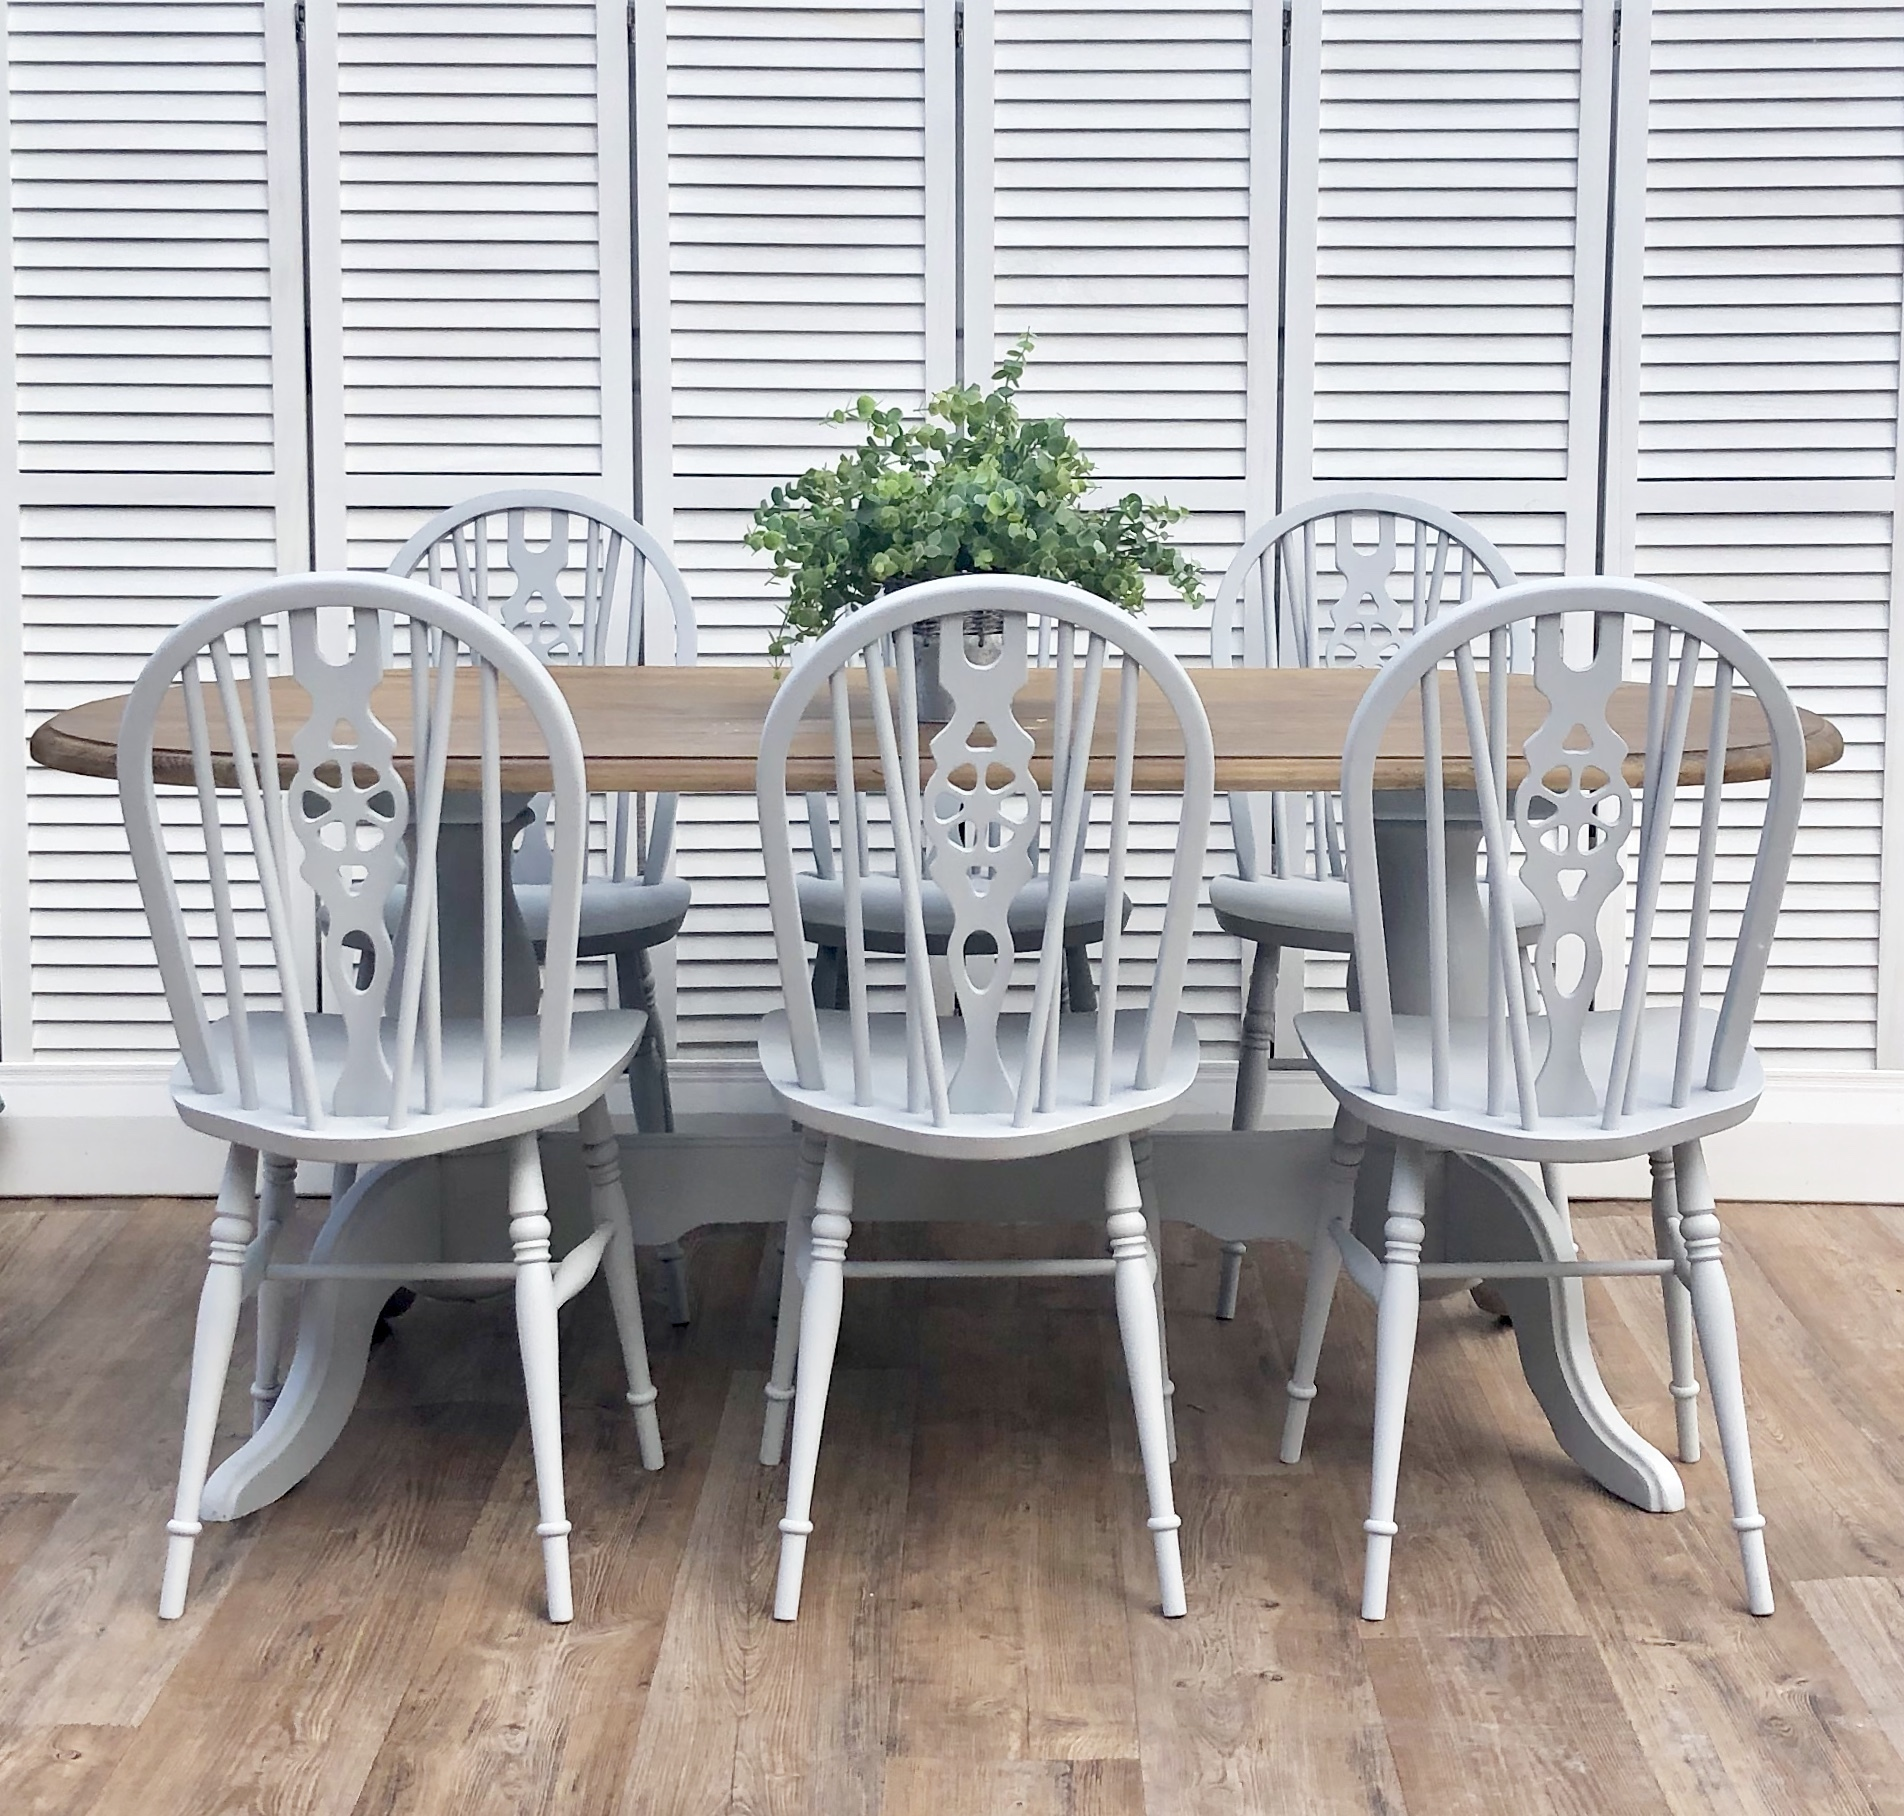 22+ Gray farmhouse chairs most popular